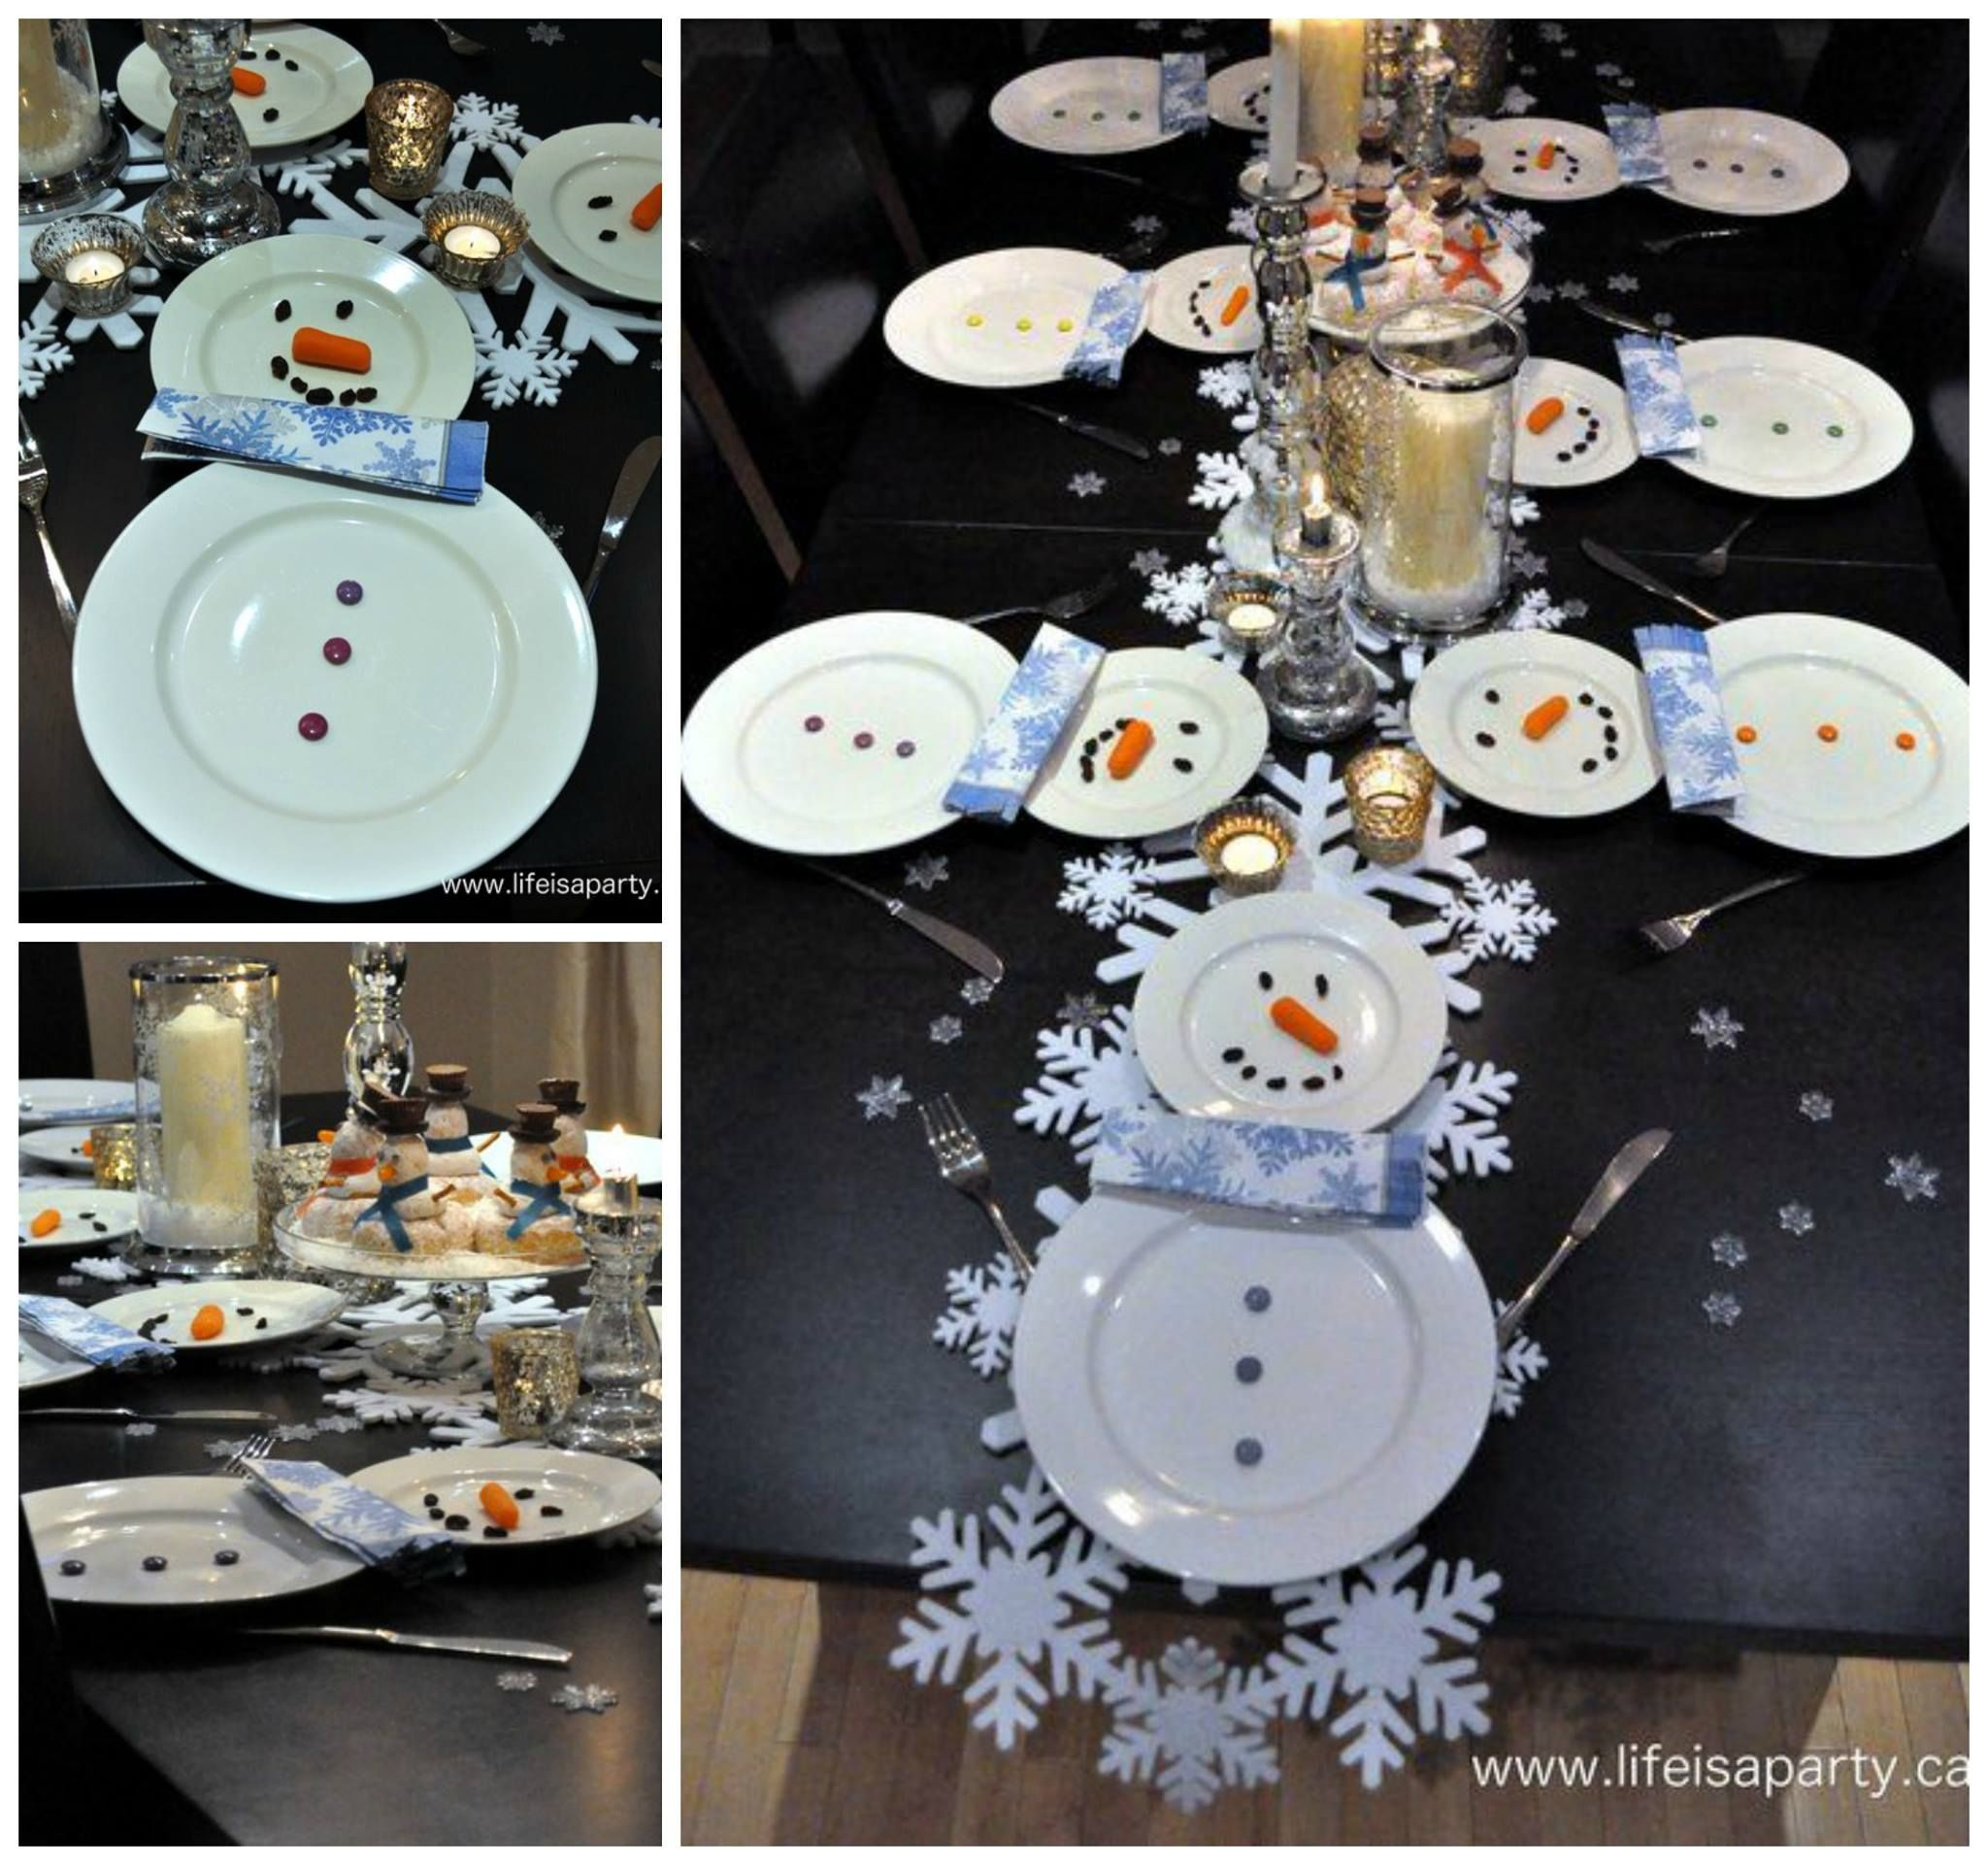 SNOWMAN TABLE SETTING...for Christmas Dinner! Such A